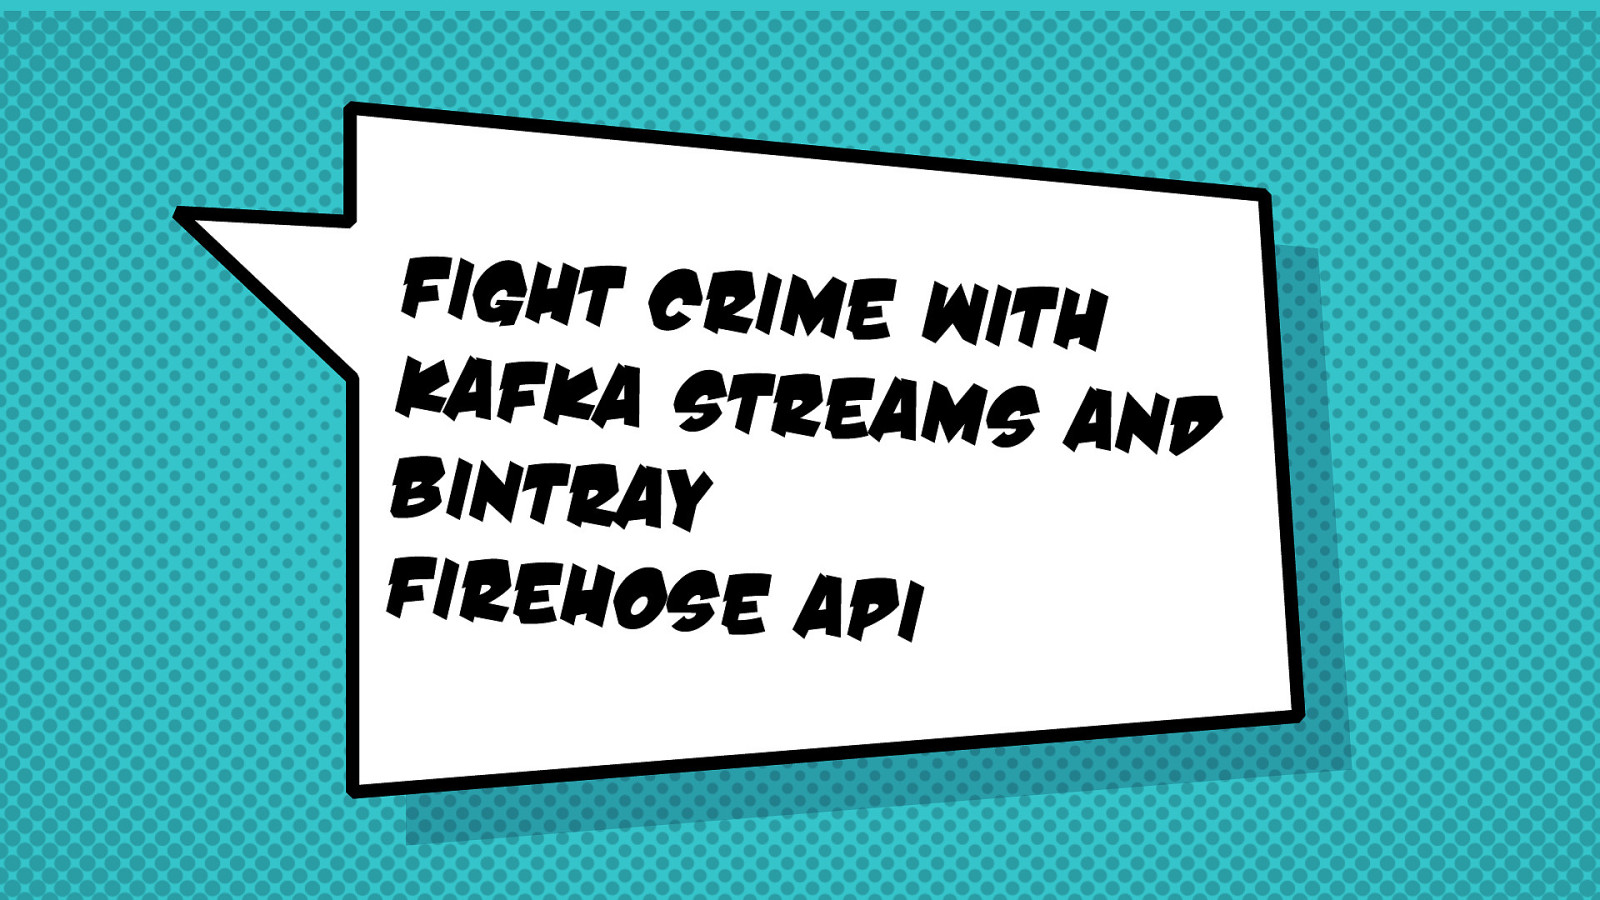 Fight Crime with Kafka Streams and the Bintray Firehose API